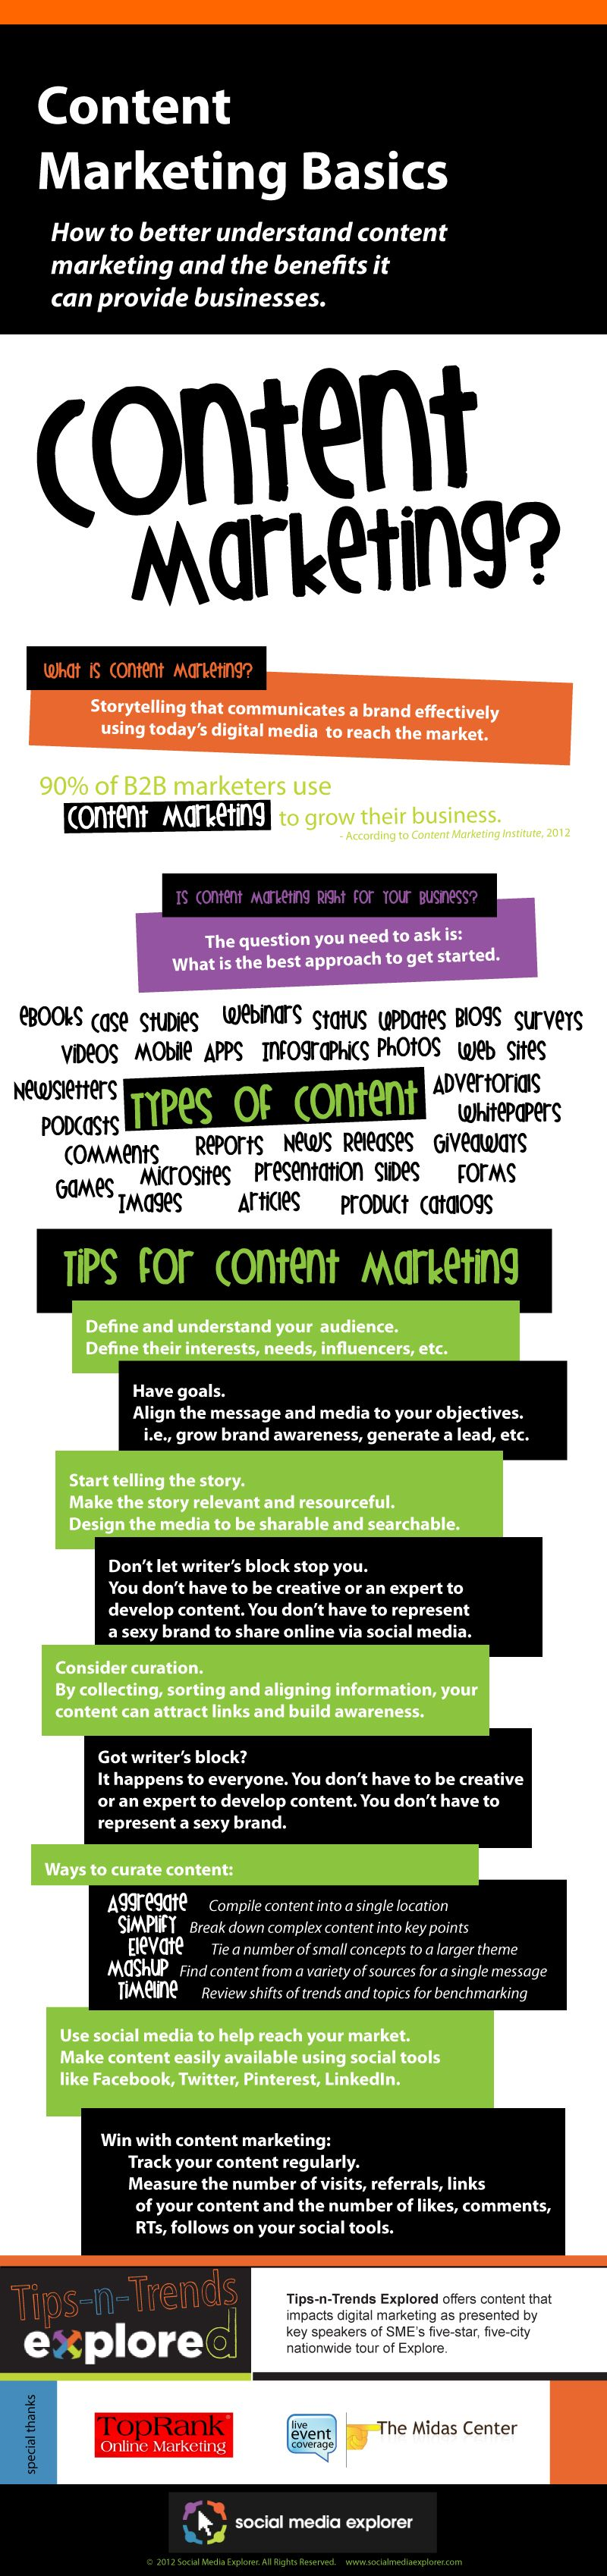 Content Marketing Basics [Infographic] #BusinessTips